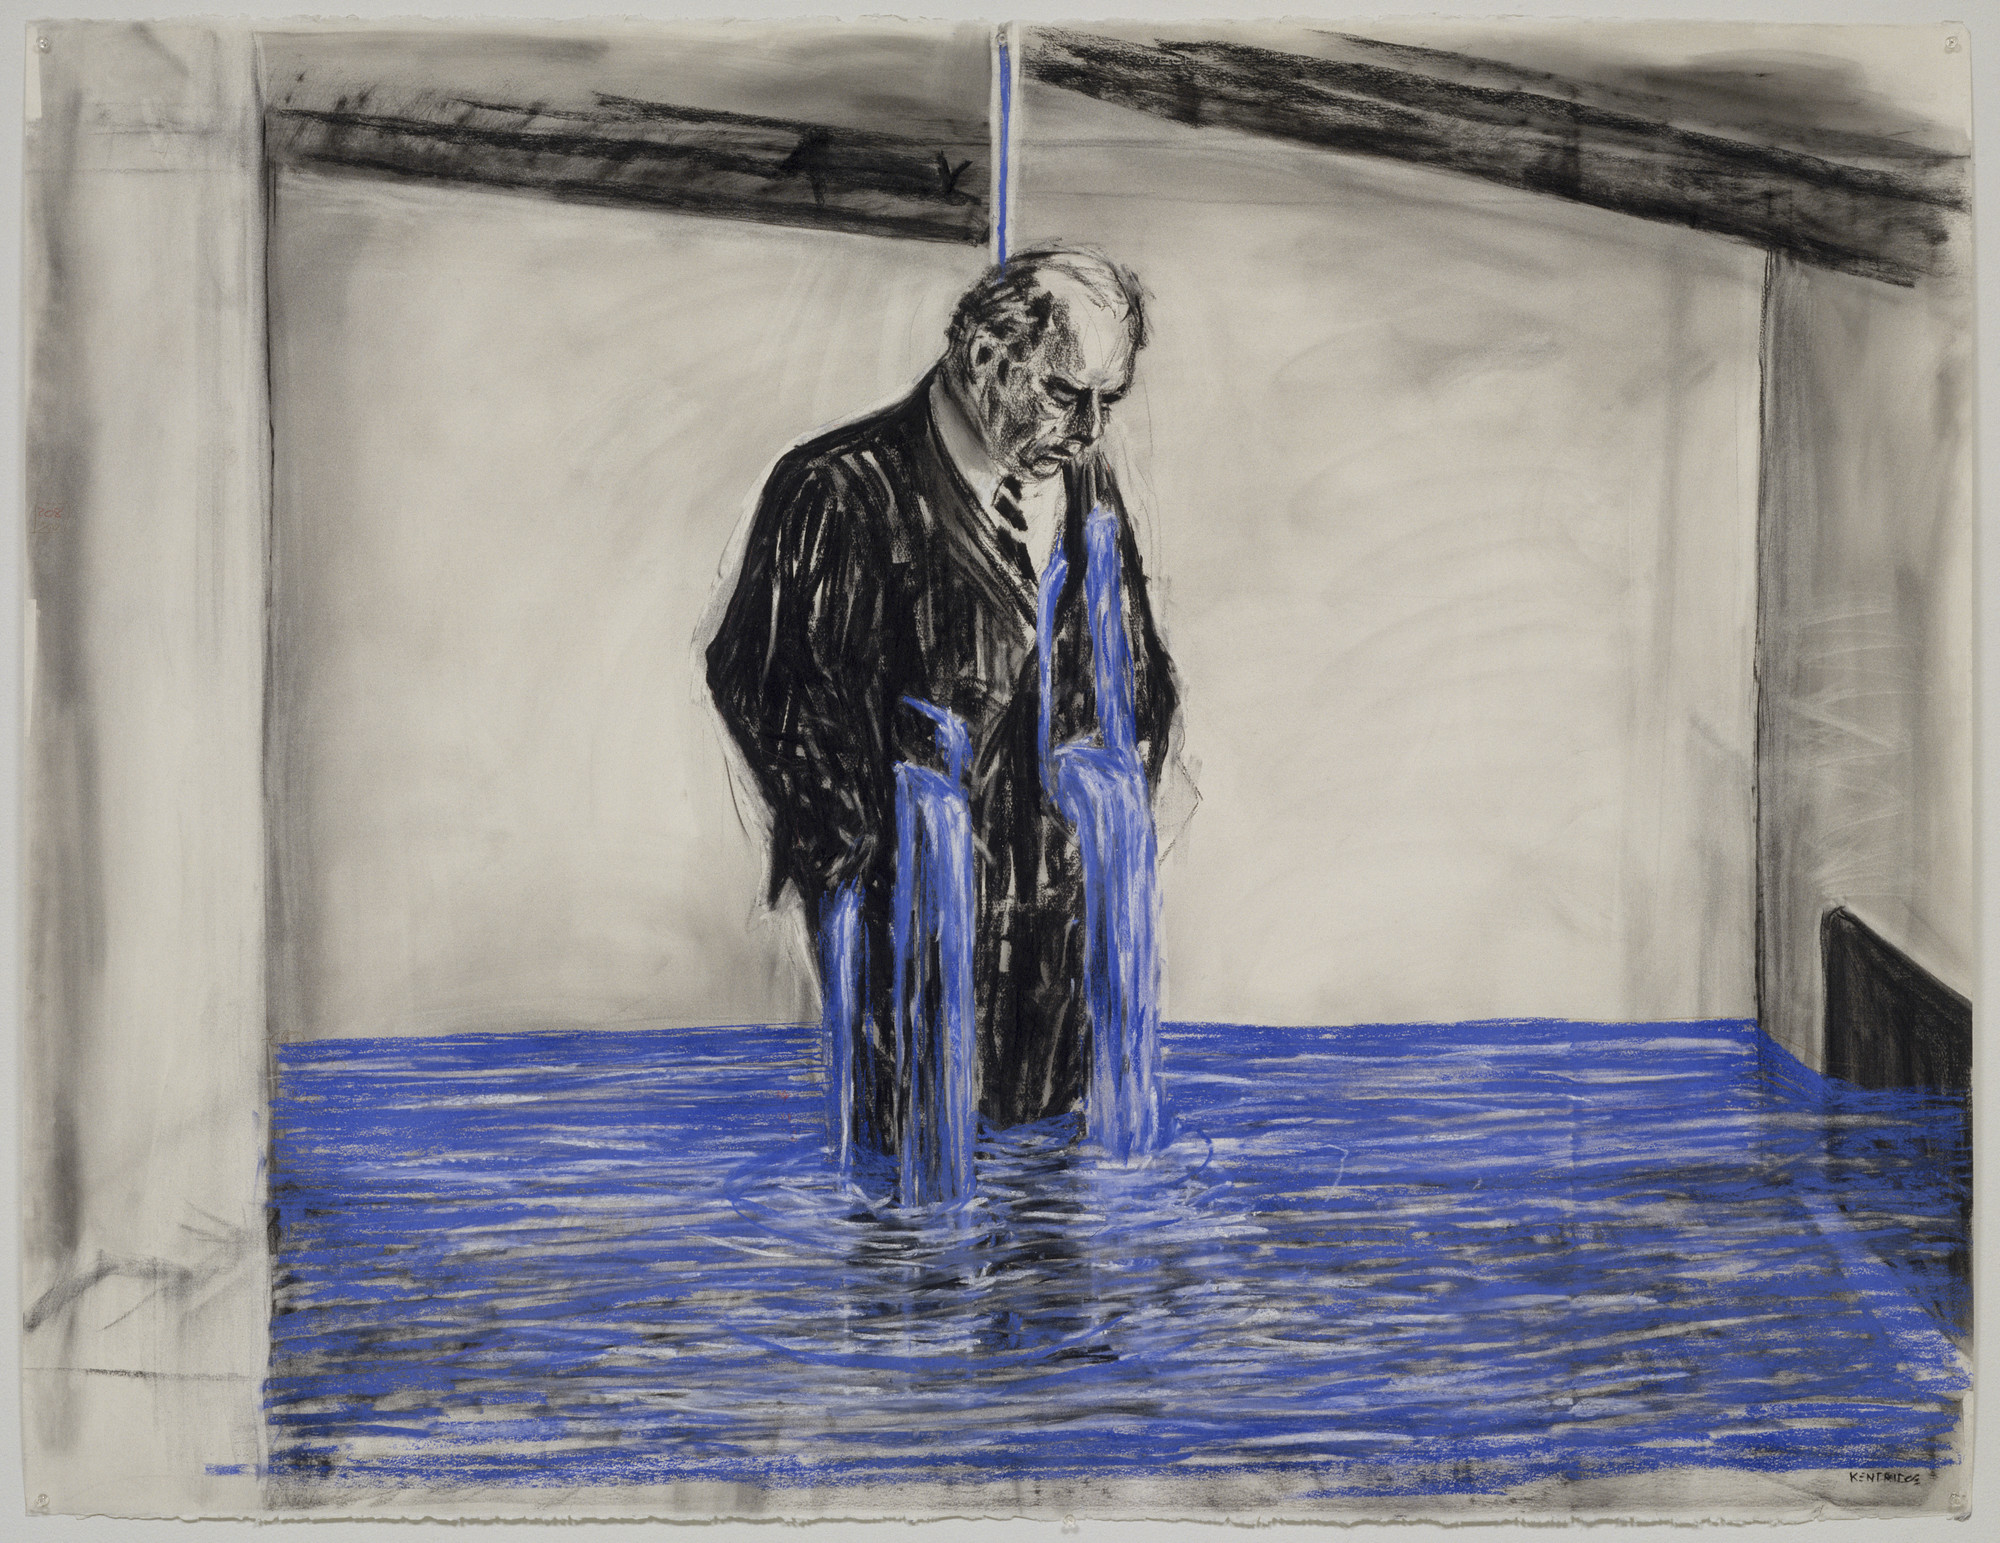 William Kentridge. Drawing from STEREOSCOPE. 1998–99. Charcoal and pastel on paper, 47 1⁄4 × 63″ (120 × 160 cm). Gift of The Junior Associates of The Museum of Modern Art, with special contributions from Anonymous, Scott J. Lorinsky, Yasufumi Nakamura, and The Wider Foundation. © 2003 William Kentridge. Photo: Tom Griesel, The Museum of Modern Art